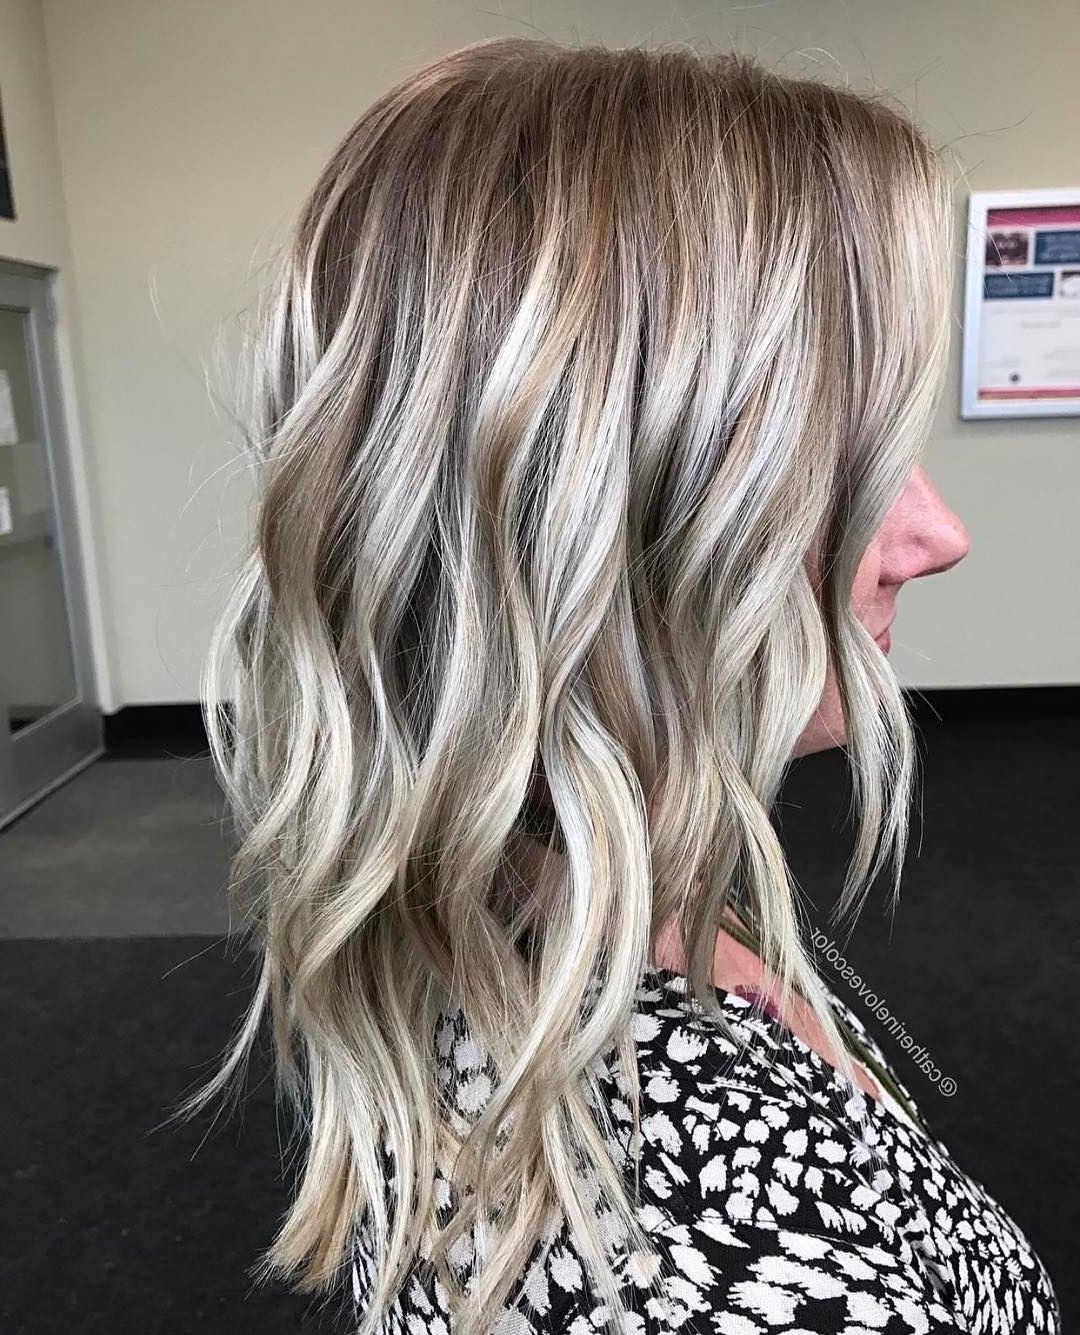 20 Adorable Ash Blonde Hairstyles To Try: Hair Color Ideas 2018 Intended For Most Popular Light Ash Locks Blonde Hairstyles (View 5 of 20)